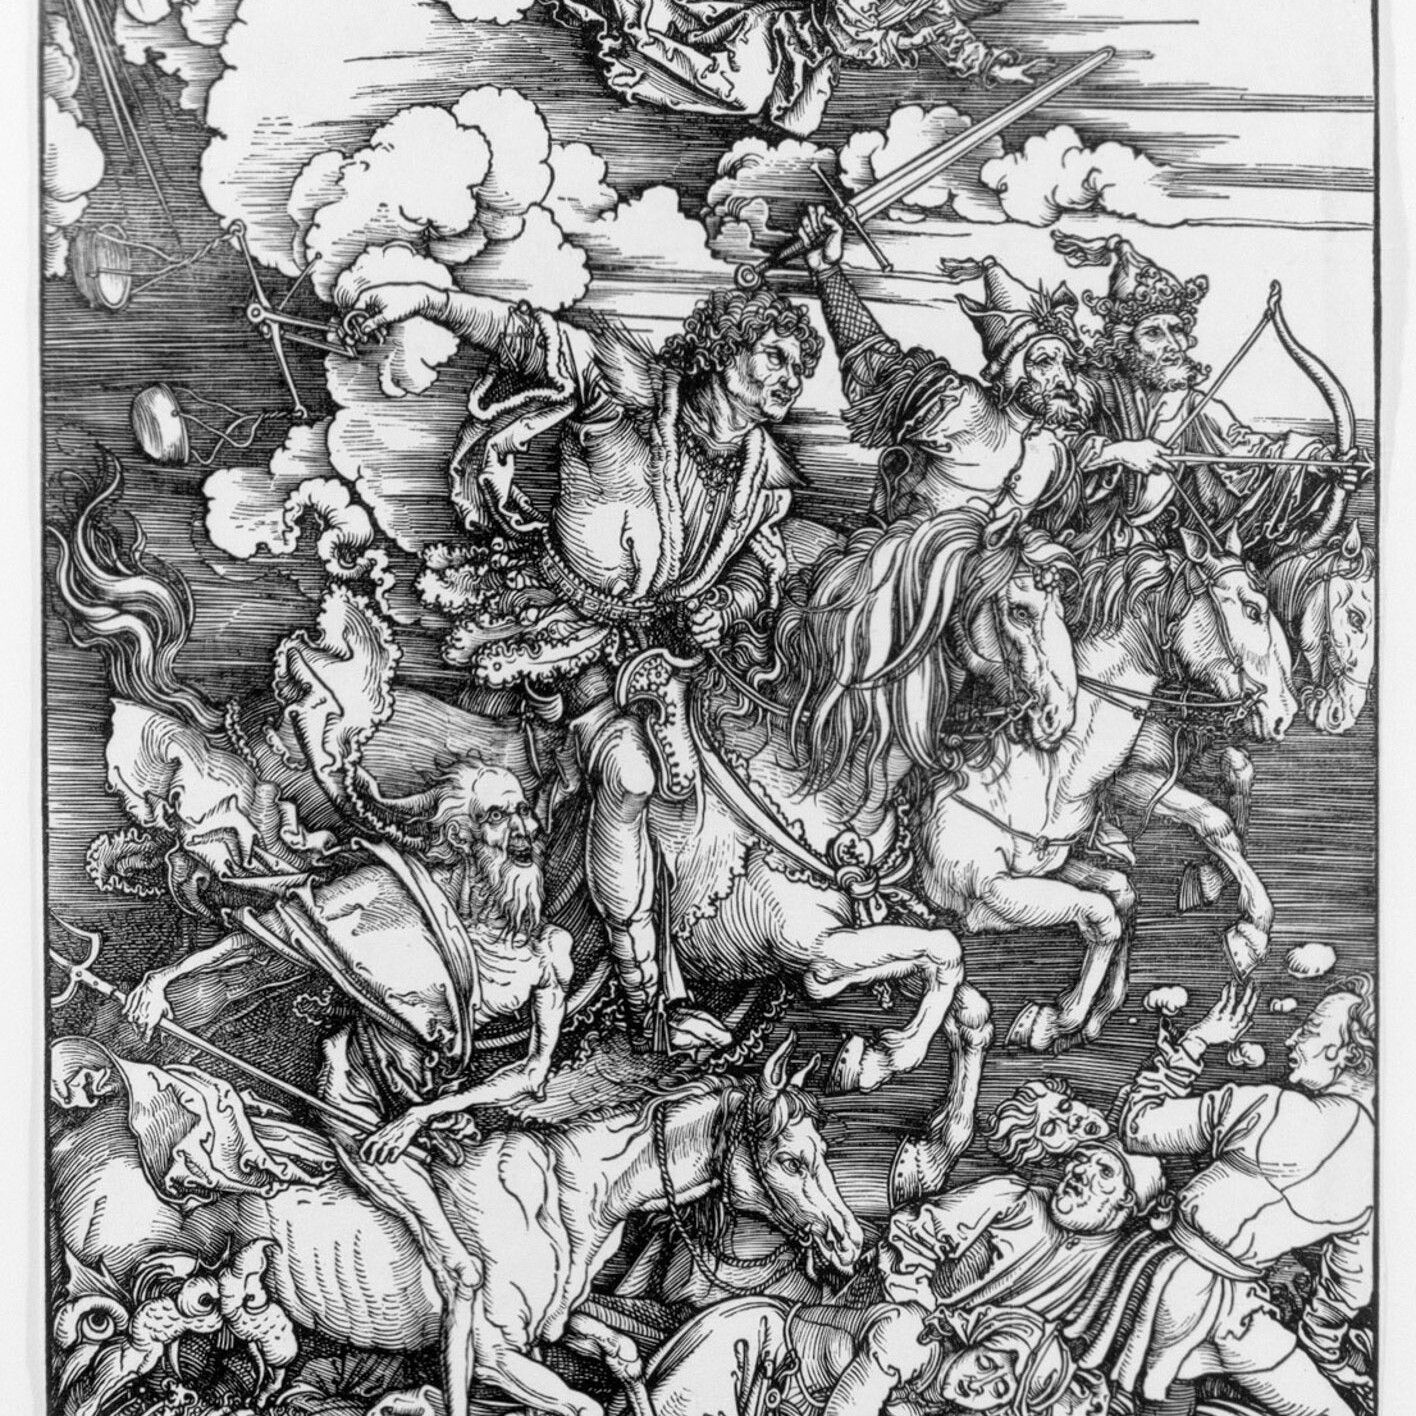 Reference Image: Romeo Alaeff, 'The End of Days,' 2007. 60 x 40 in. (152,4 x 101,6 cm.) Limited Edition Serigraph Print. Edition 10. From the series, 'War on the Brain.' Drawing depicting the Christian apocalyptic prophesies from the book of Revelations which is still used to manipulate the masses. Based loosely on prints by Albrecht Dürer and other historic texts.